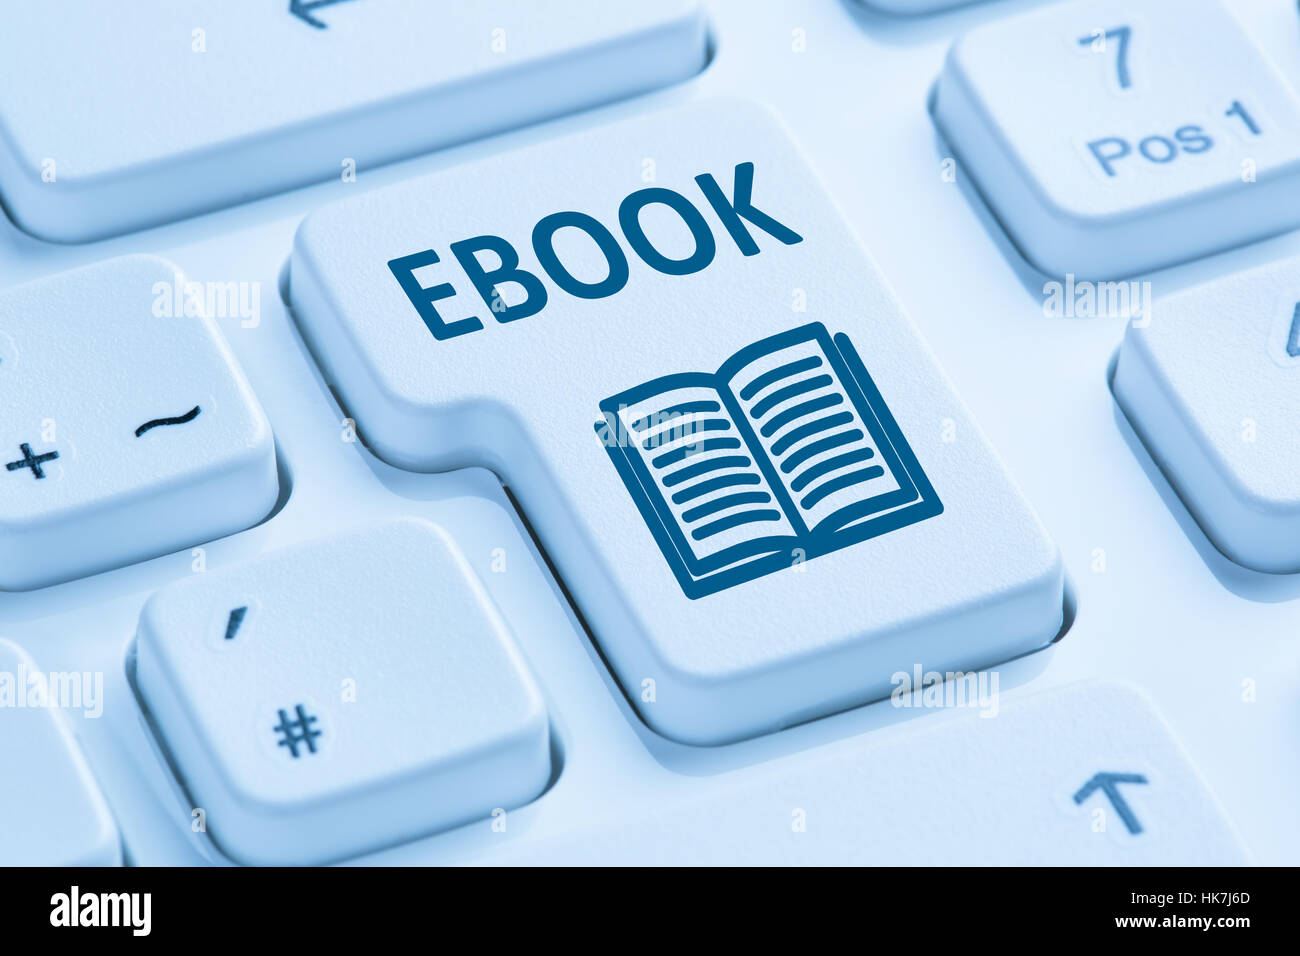 Ordering E-book Ebook download internet symbol blue computer keyboard - Stock Image